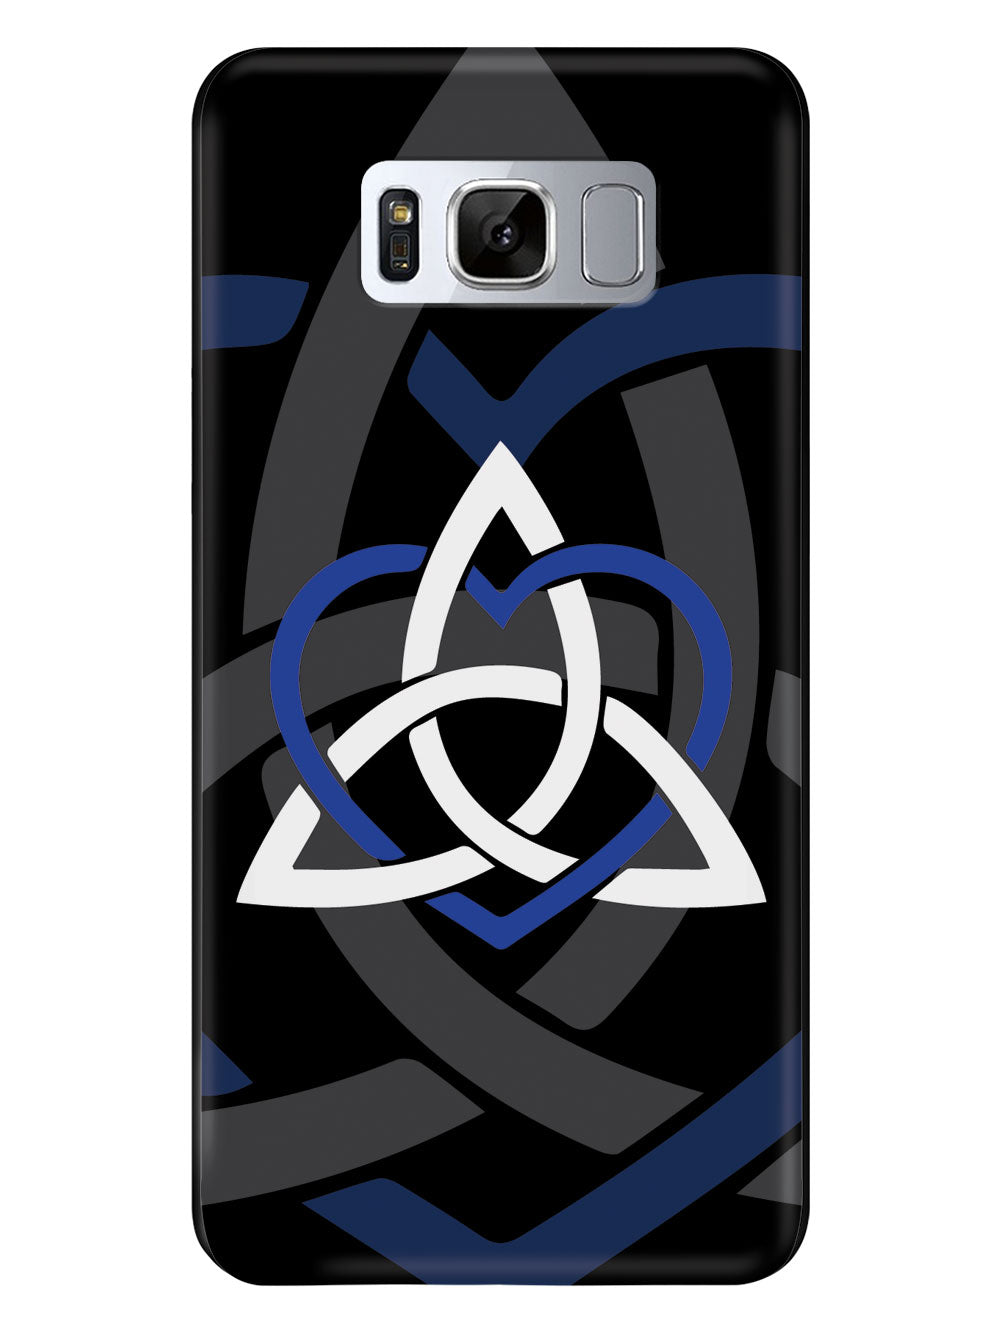 Celtic Sisters Knot - Blue - Black Case